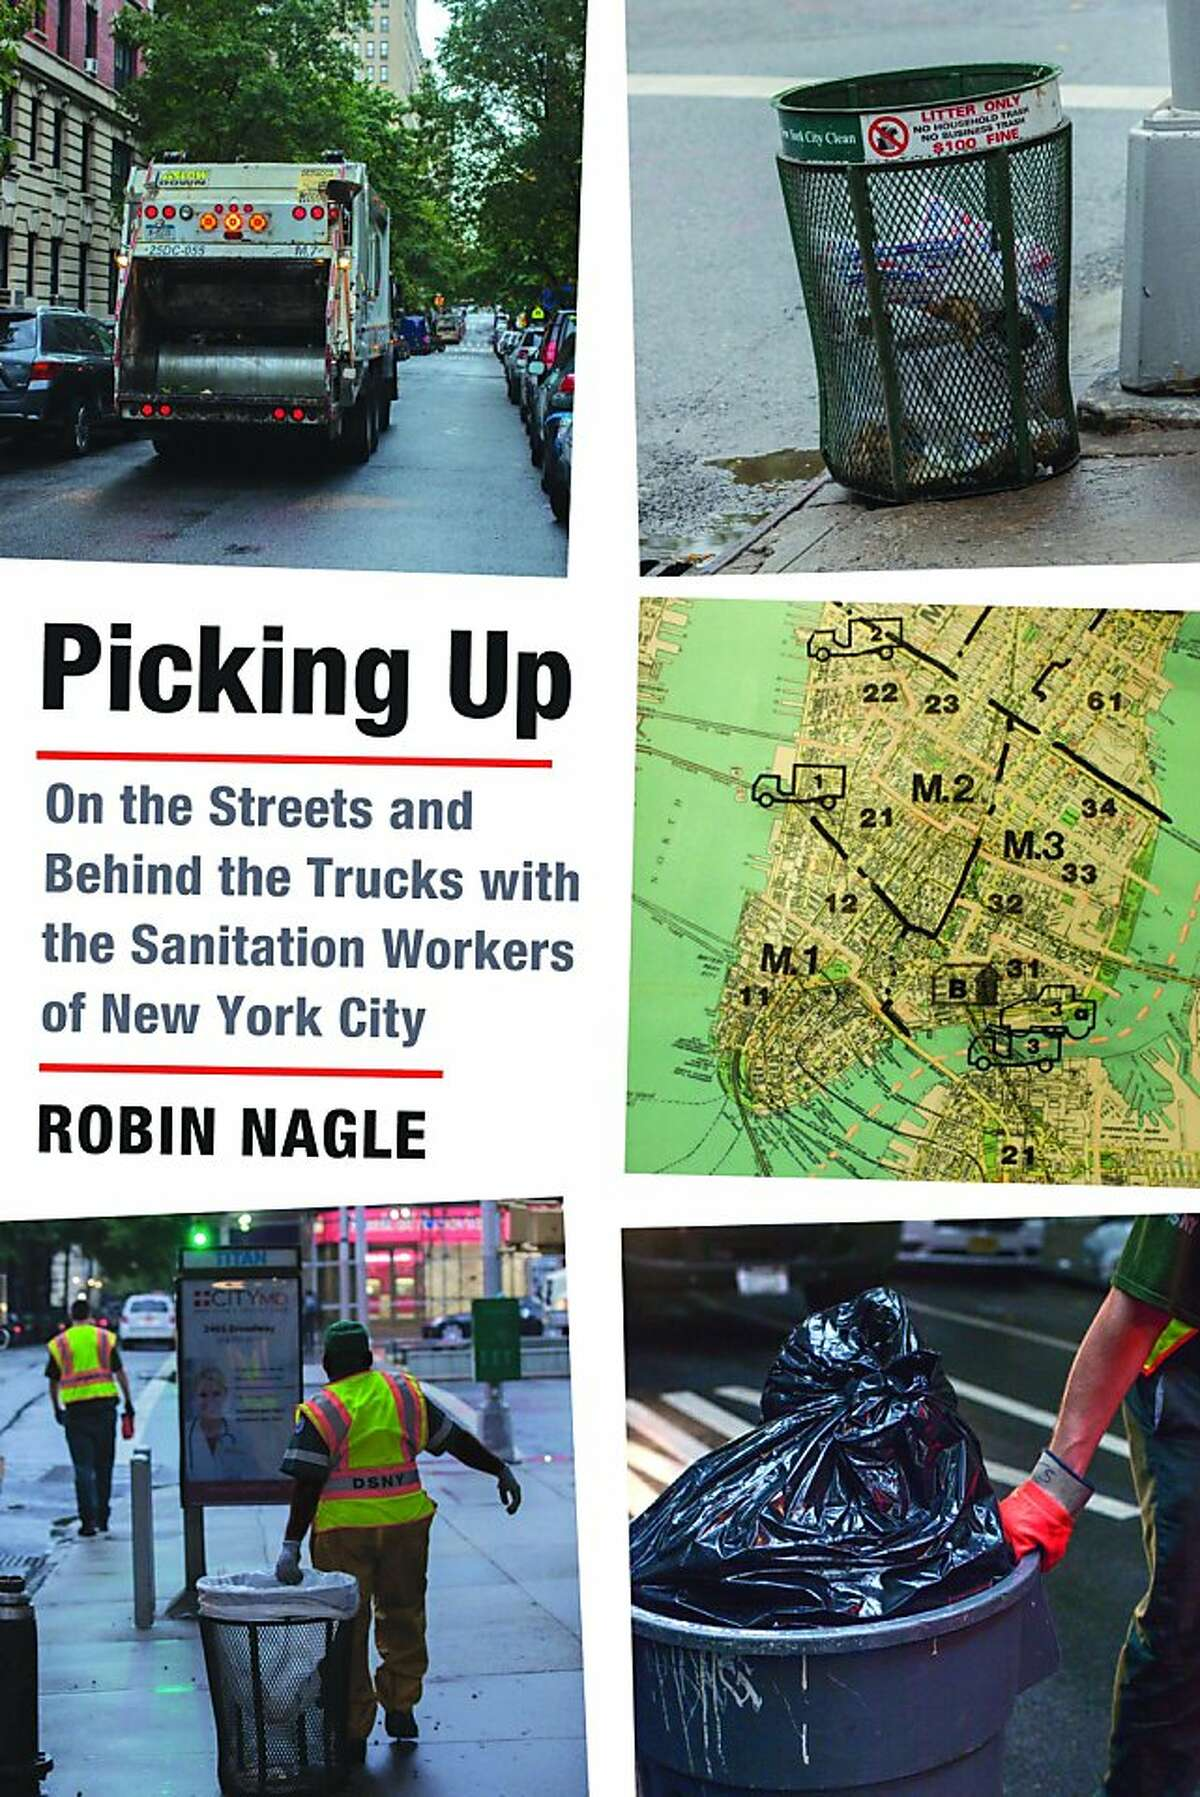 Picking Up: On the Streets and Behind the Trucks with the Sanitation Workers of New York City, by Robin Nagle